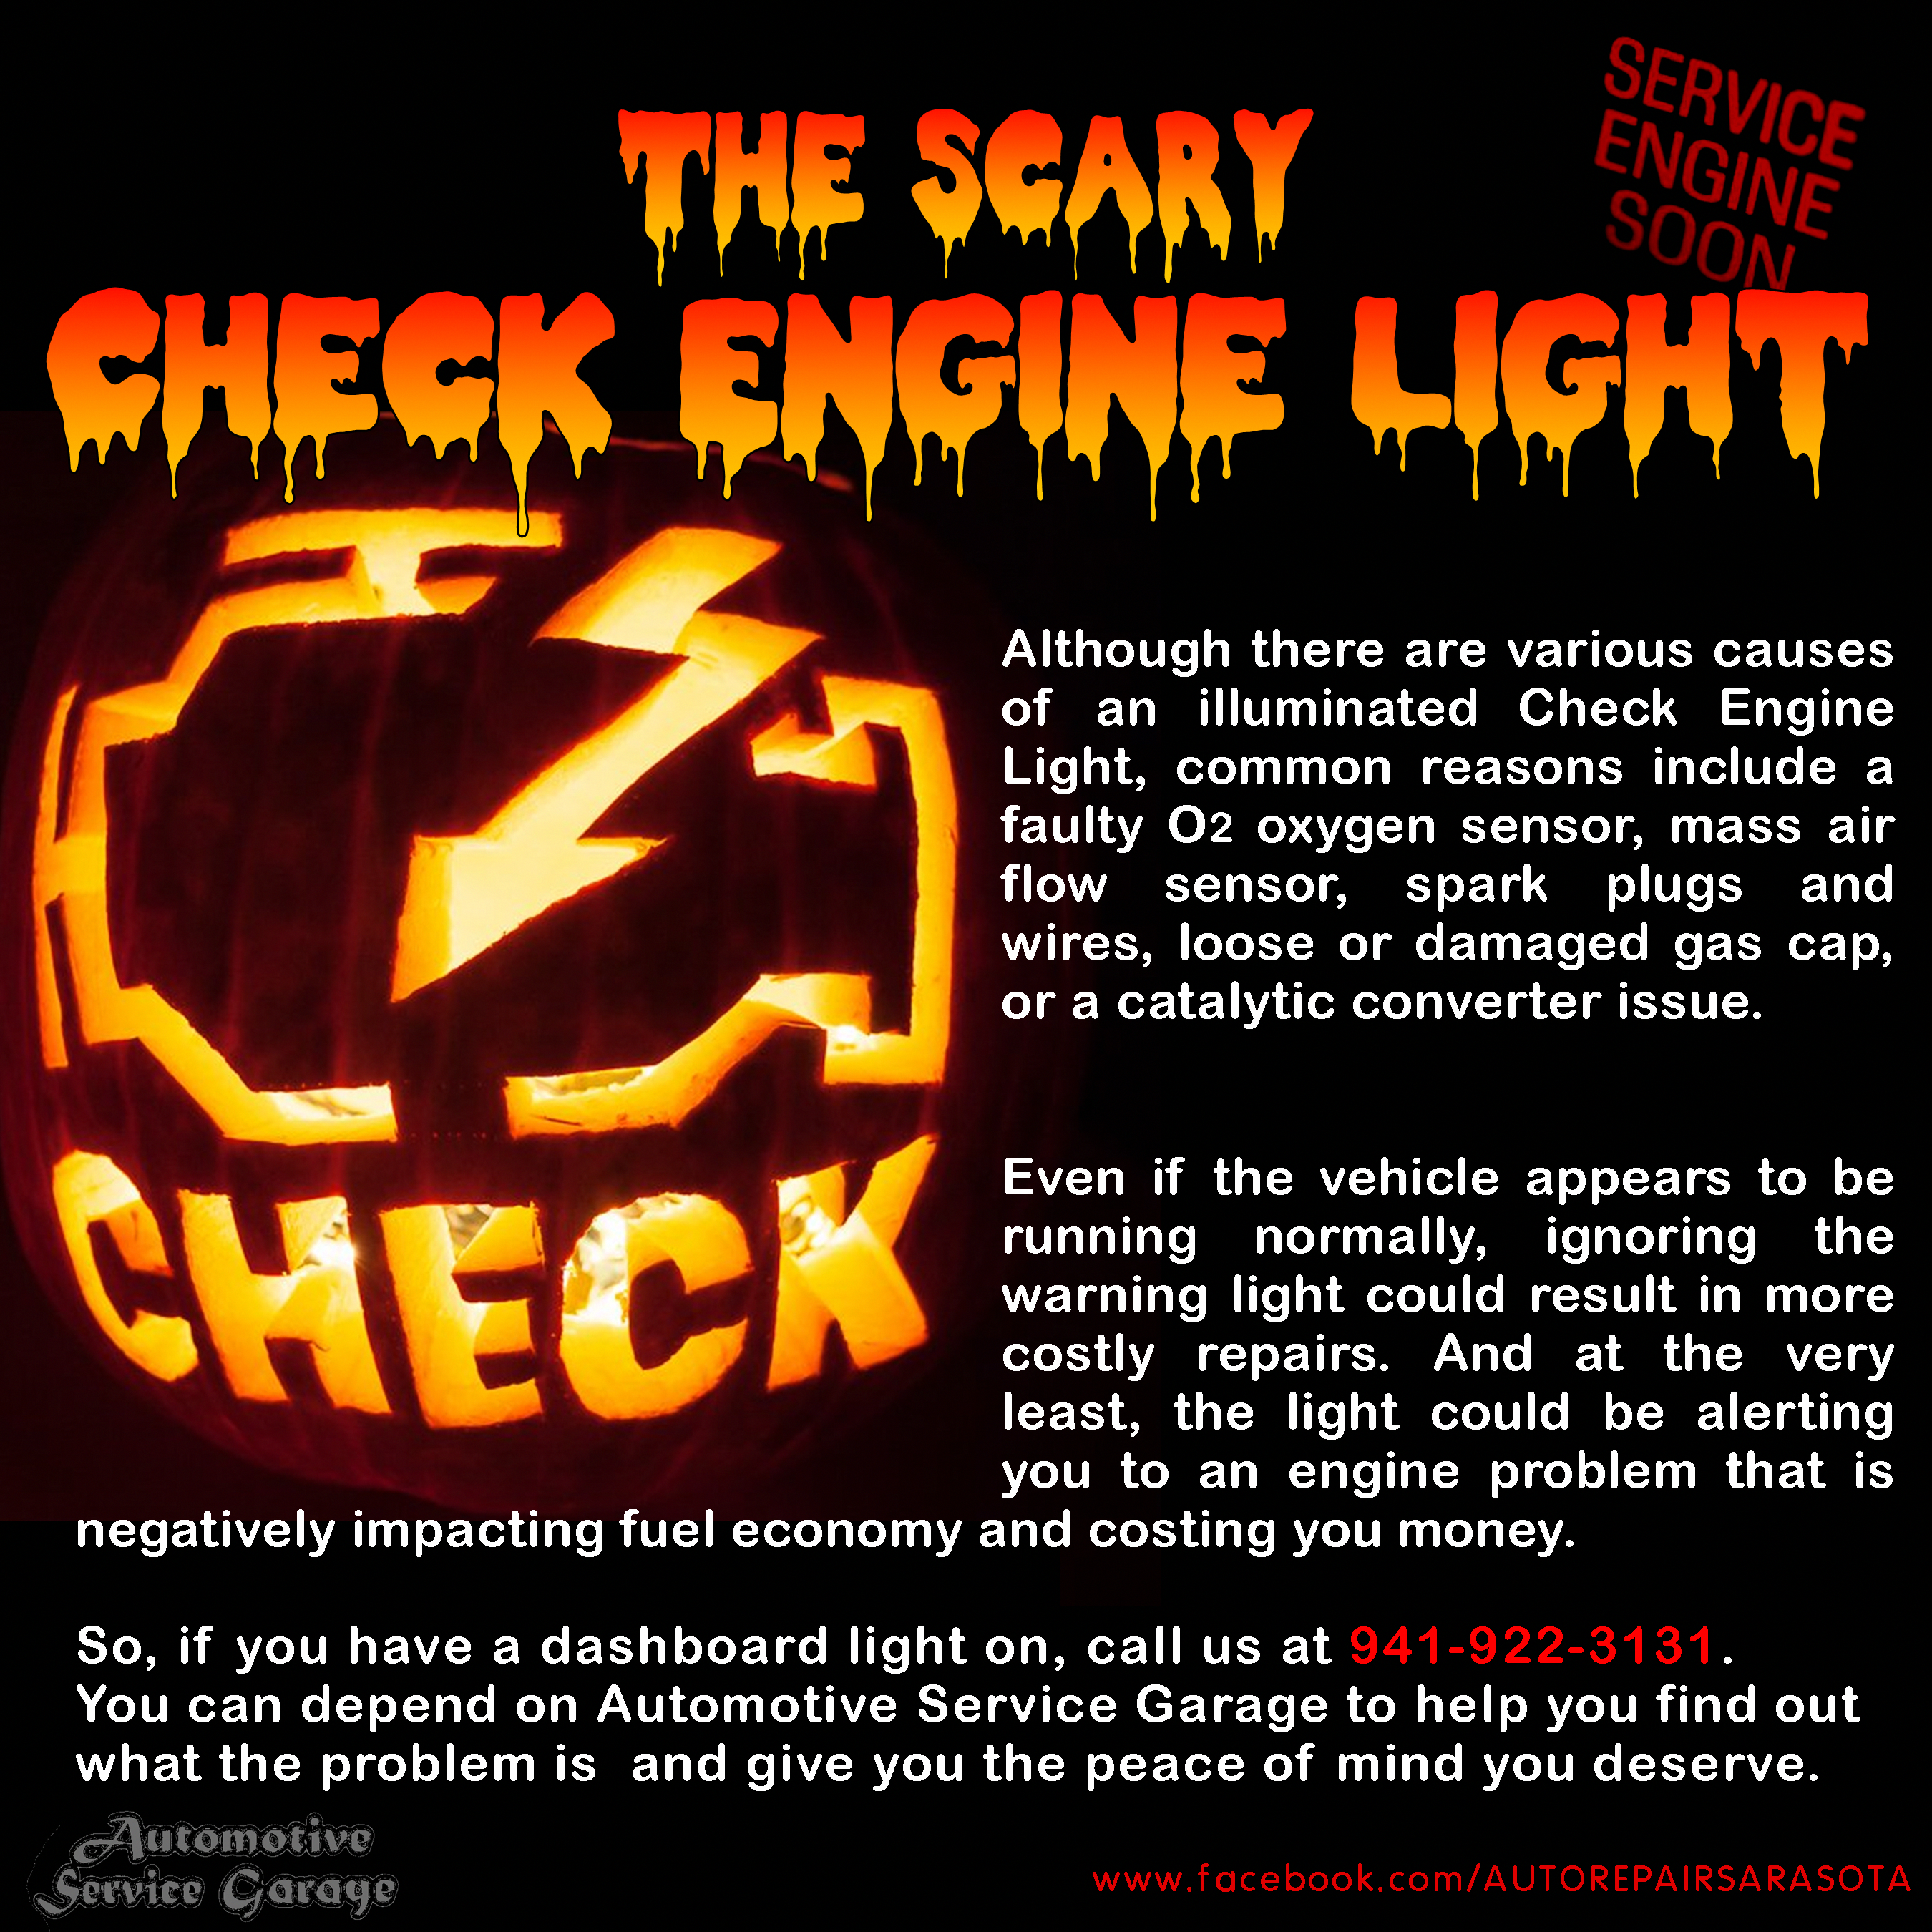 Do you have a scary dashboard warning light on? Give us a